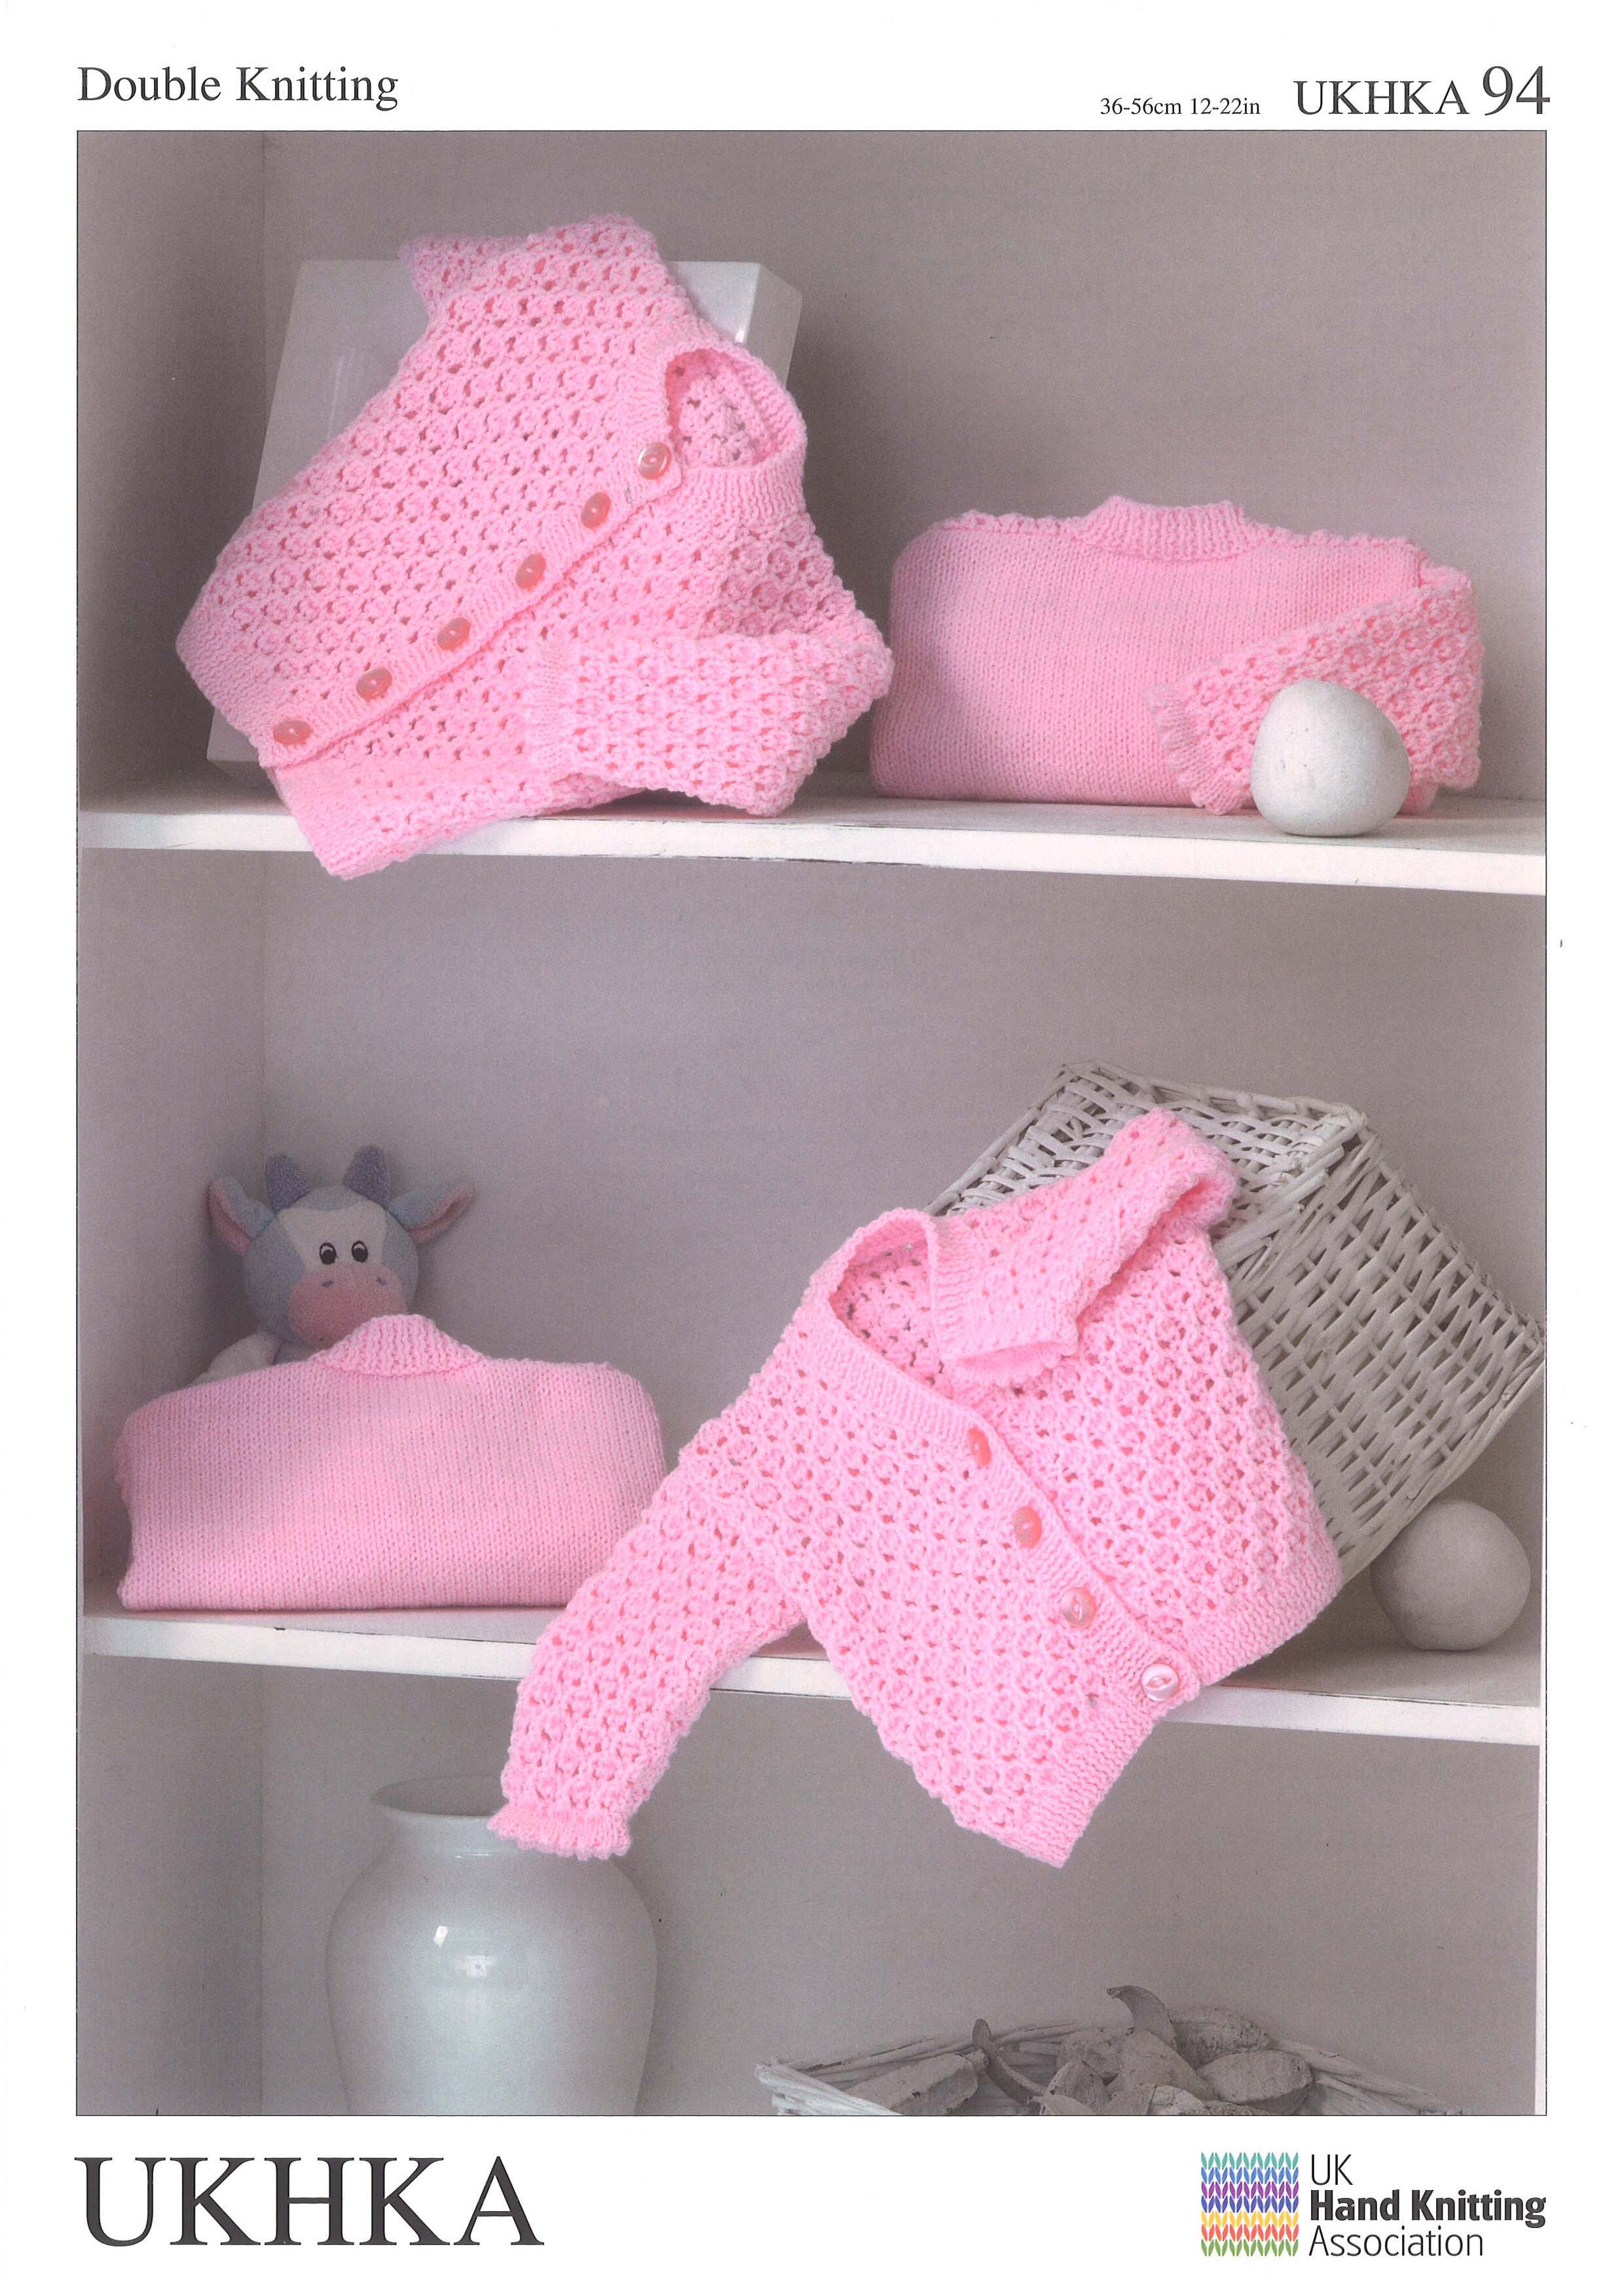 3045e6ce7 Double Knitting Pattern Cardigans 0 To 2 years 36-56 cm 14-22 inches ...